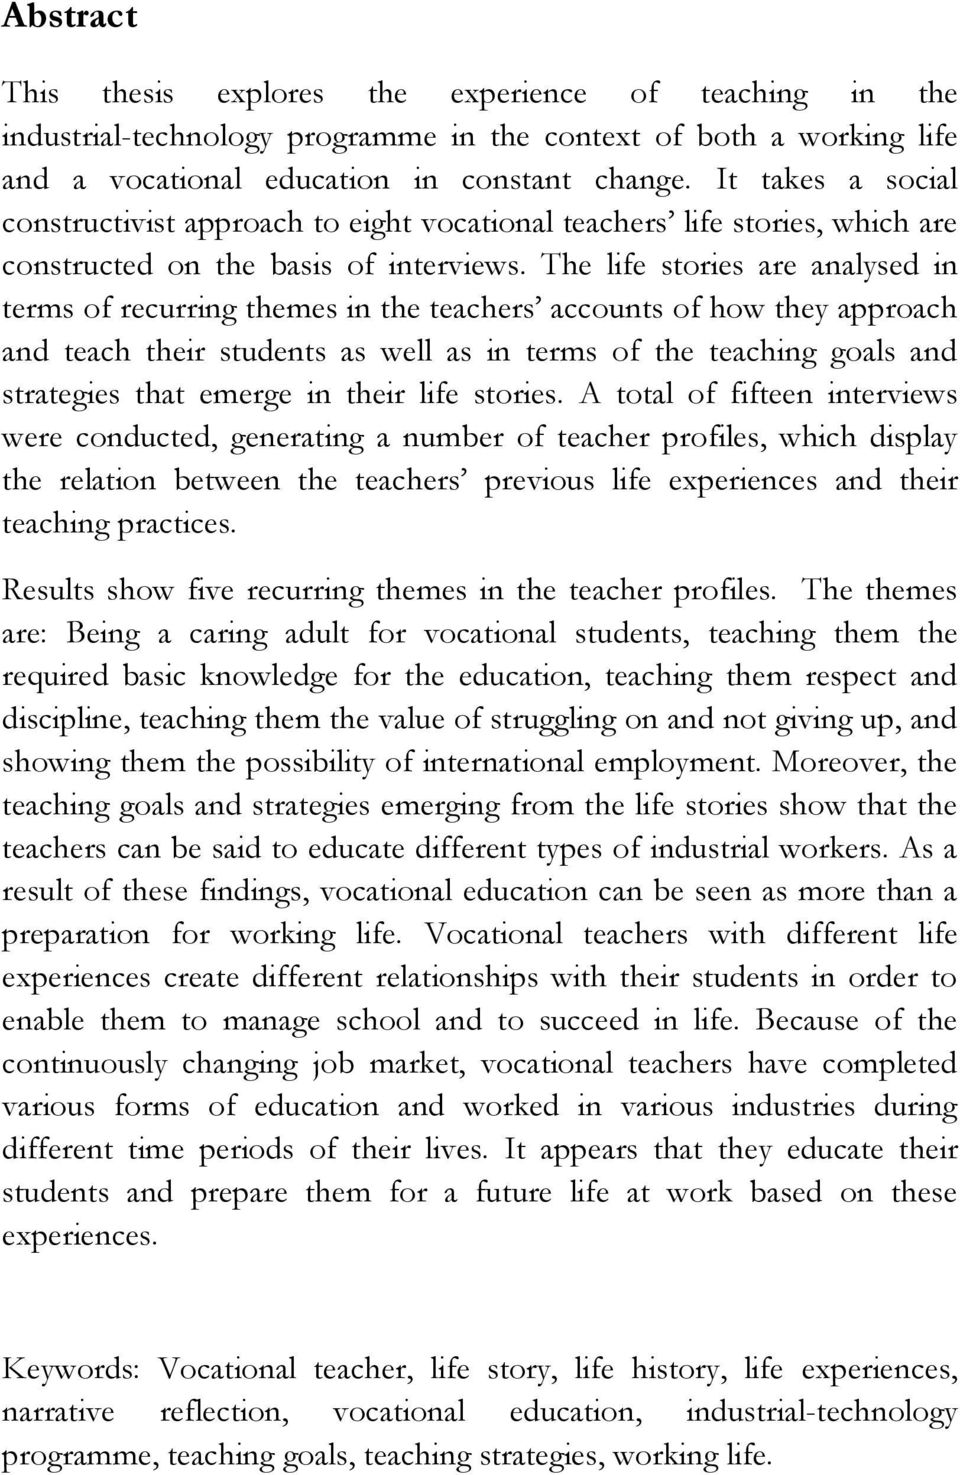 The life stories are analysed in terms of recurring themes in the teachers accounts of how they approach and teach their students as well as in terms of the teaching goals and strategies that emerge